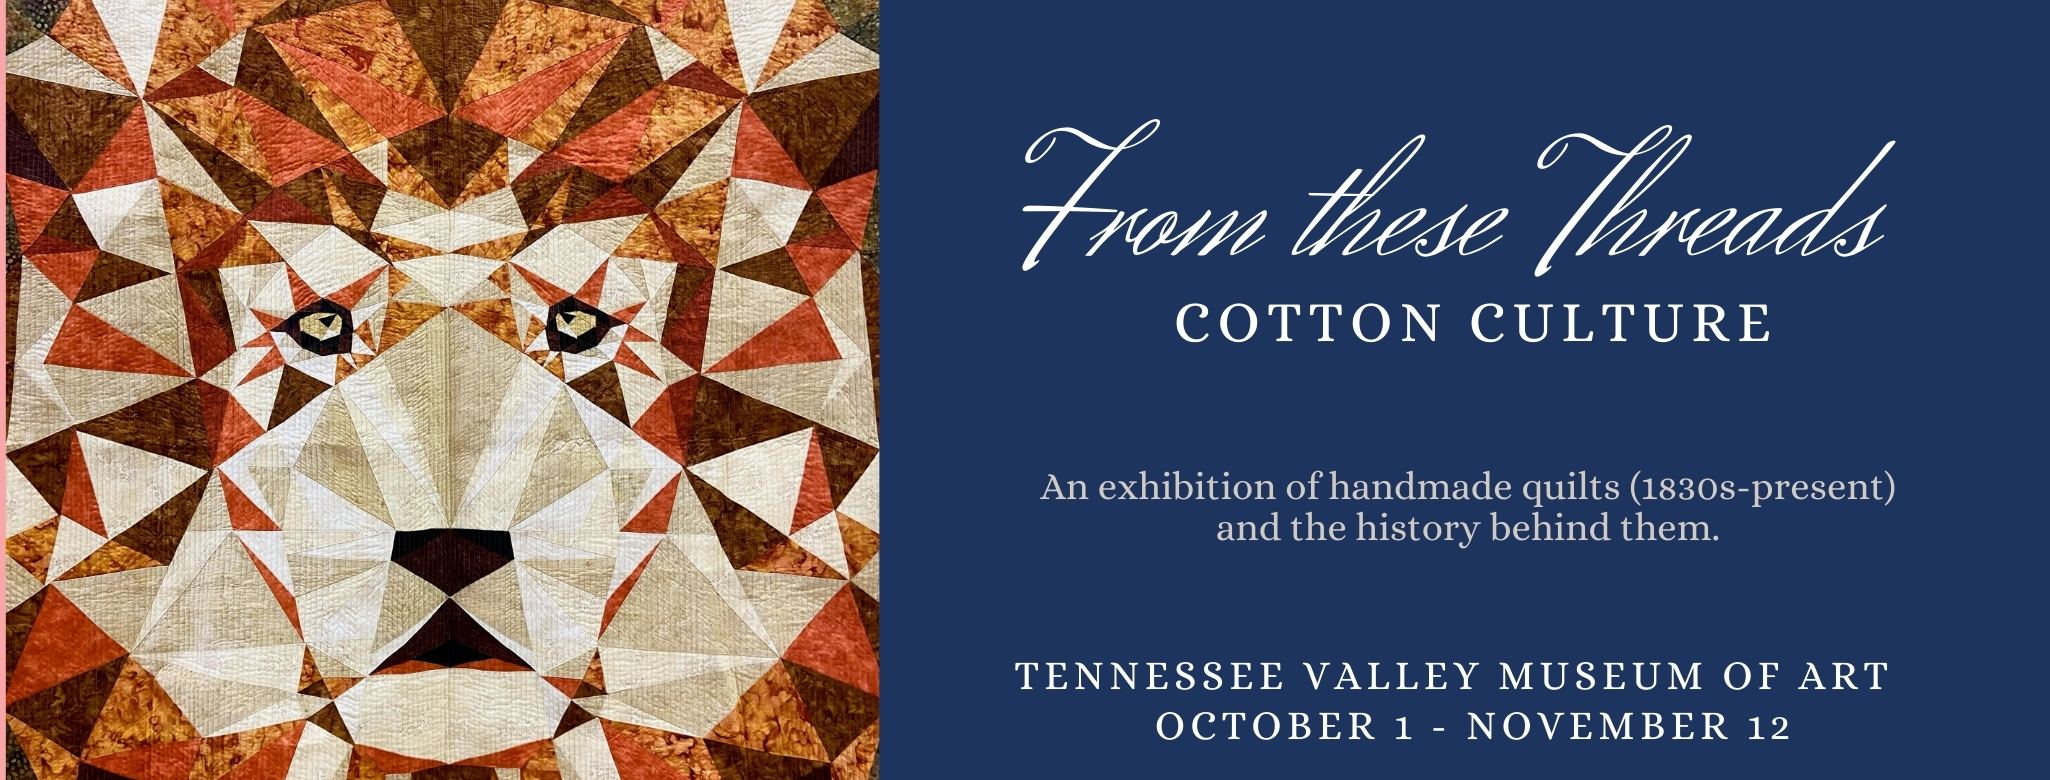 """Photo of lion quilt with the words """"From These Threads: Cotton Culture - An exhibition of handmade quilts (1830s-present) and the history behind them. - Tennessee Valley Museum of Art - October 1 - November 12"""